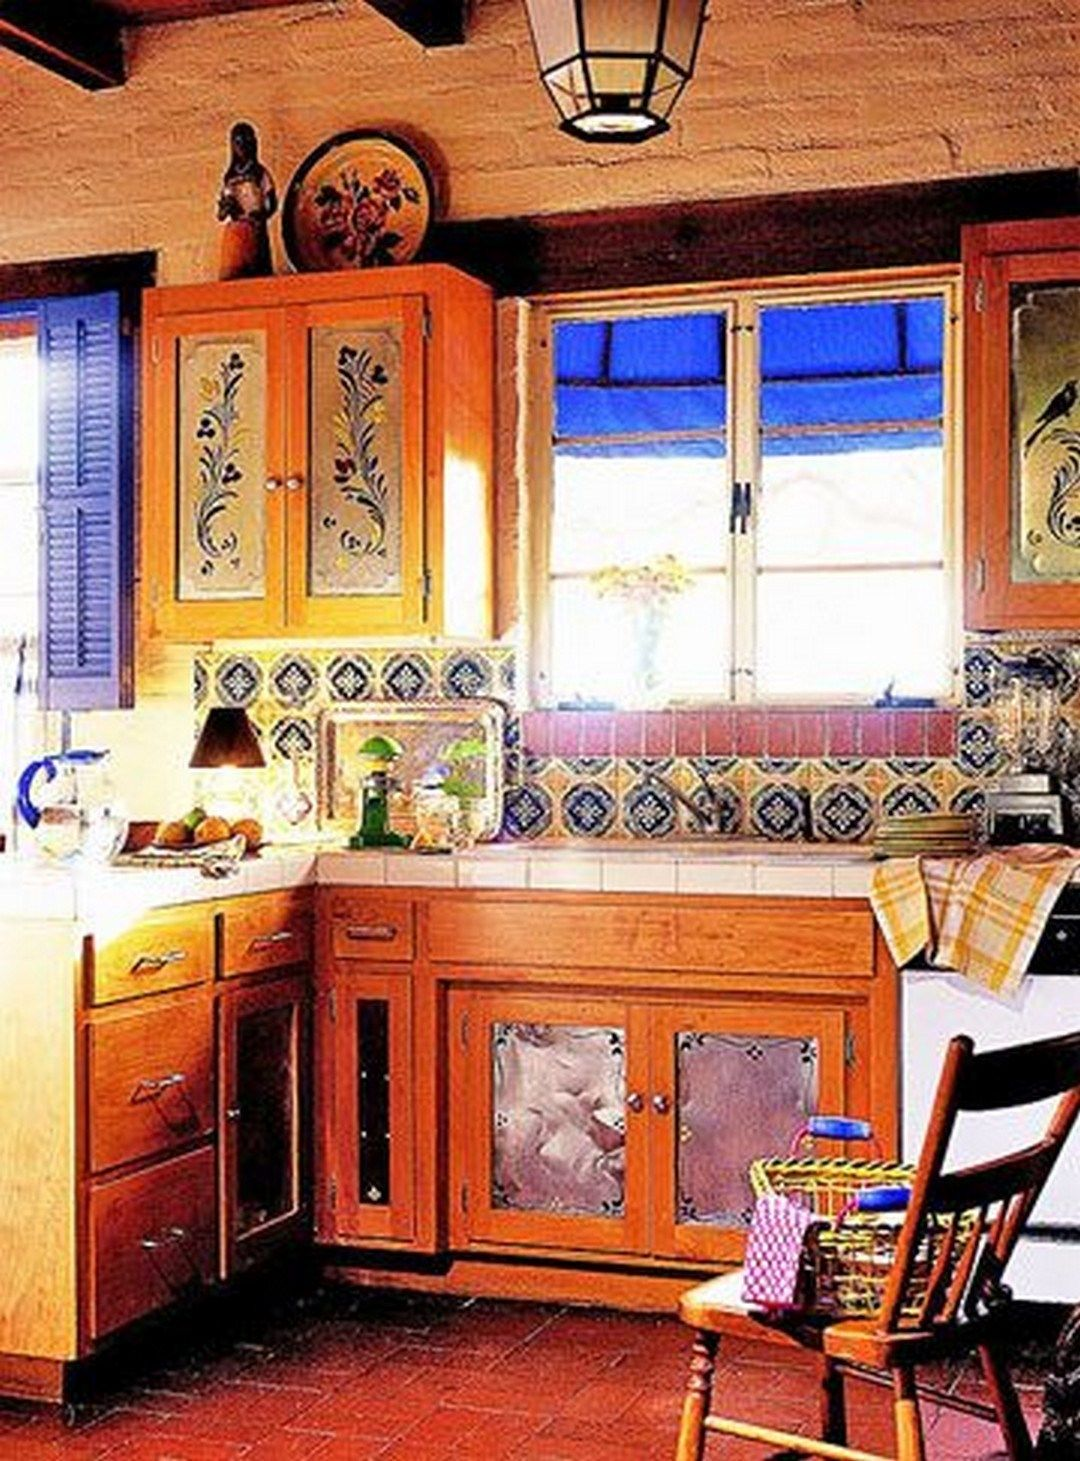 37 Colorful Kitchen Decorating With Mexican Style 12 Mexican Kitchen Decor Mexican Style Kitchens Kitchen Cabinets Decor